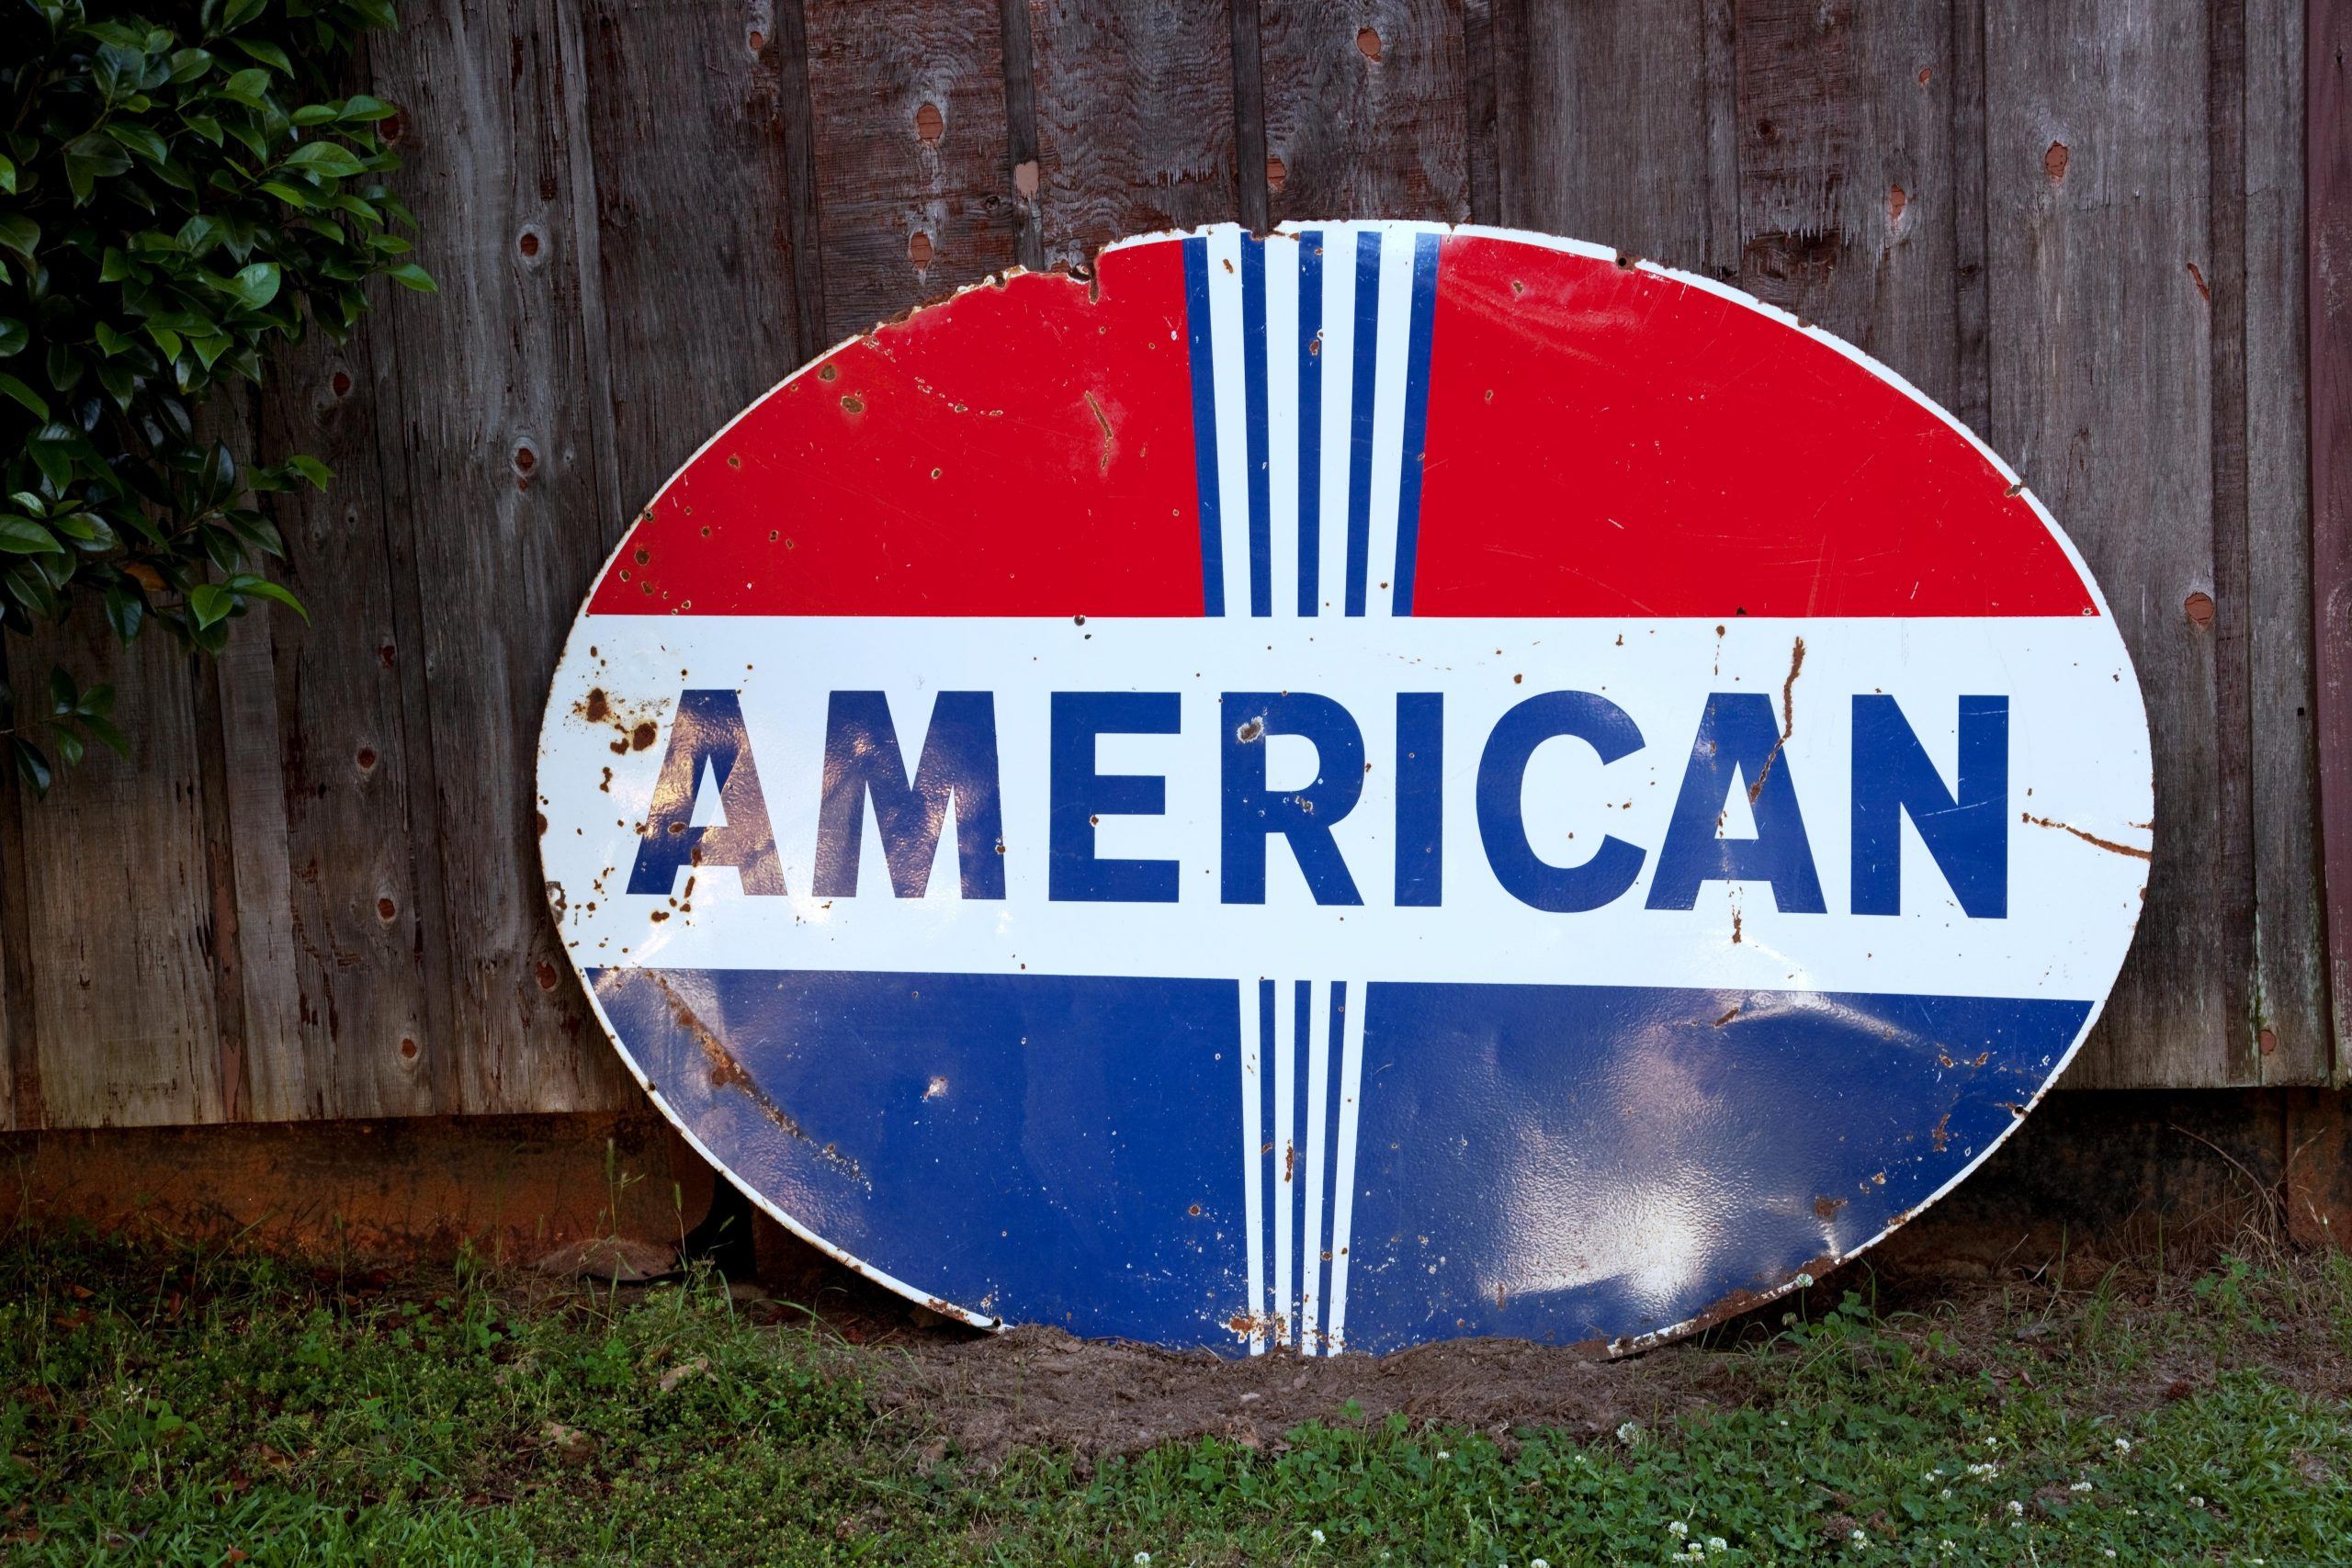 american-oval-signage-221327